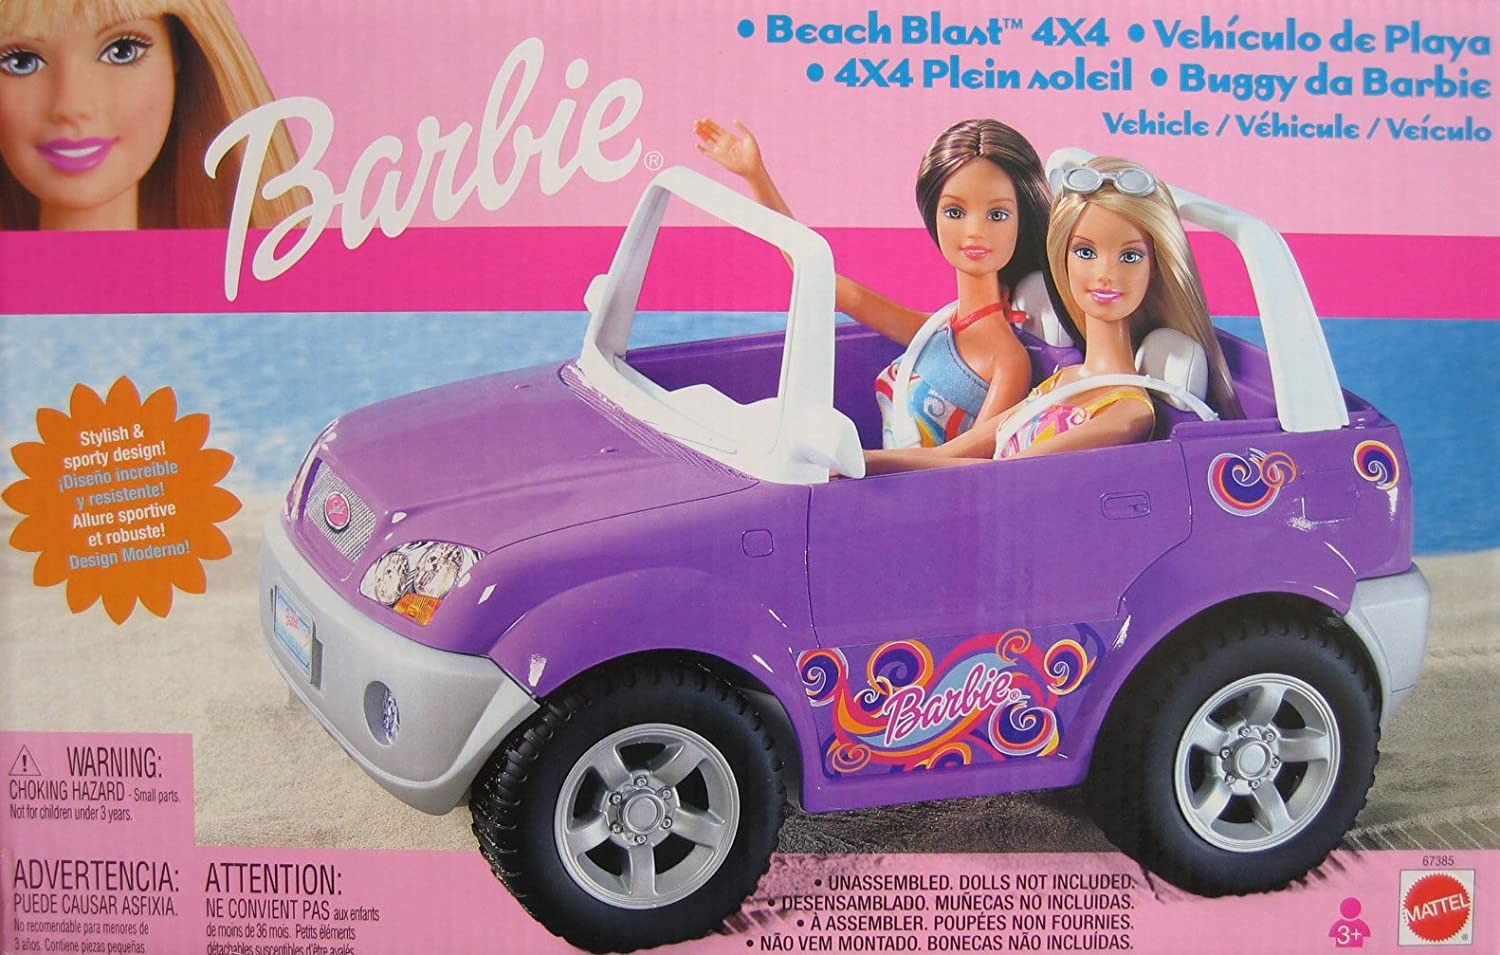 Barbie Beach Blast 4 x 4 Vehicle w Stylish Sporty Design  (2002)